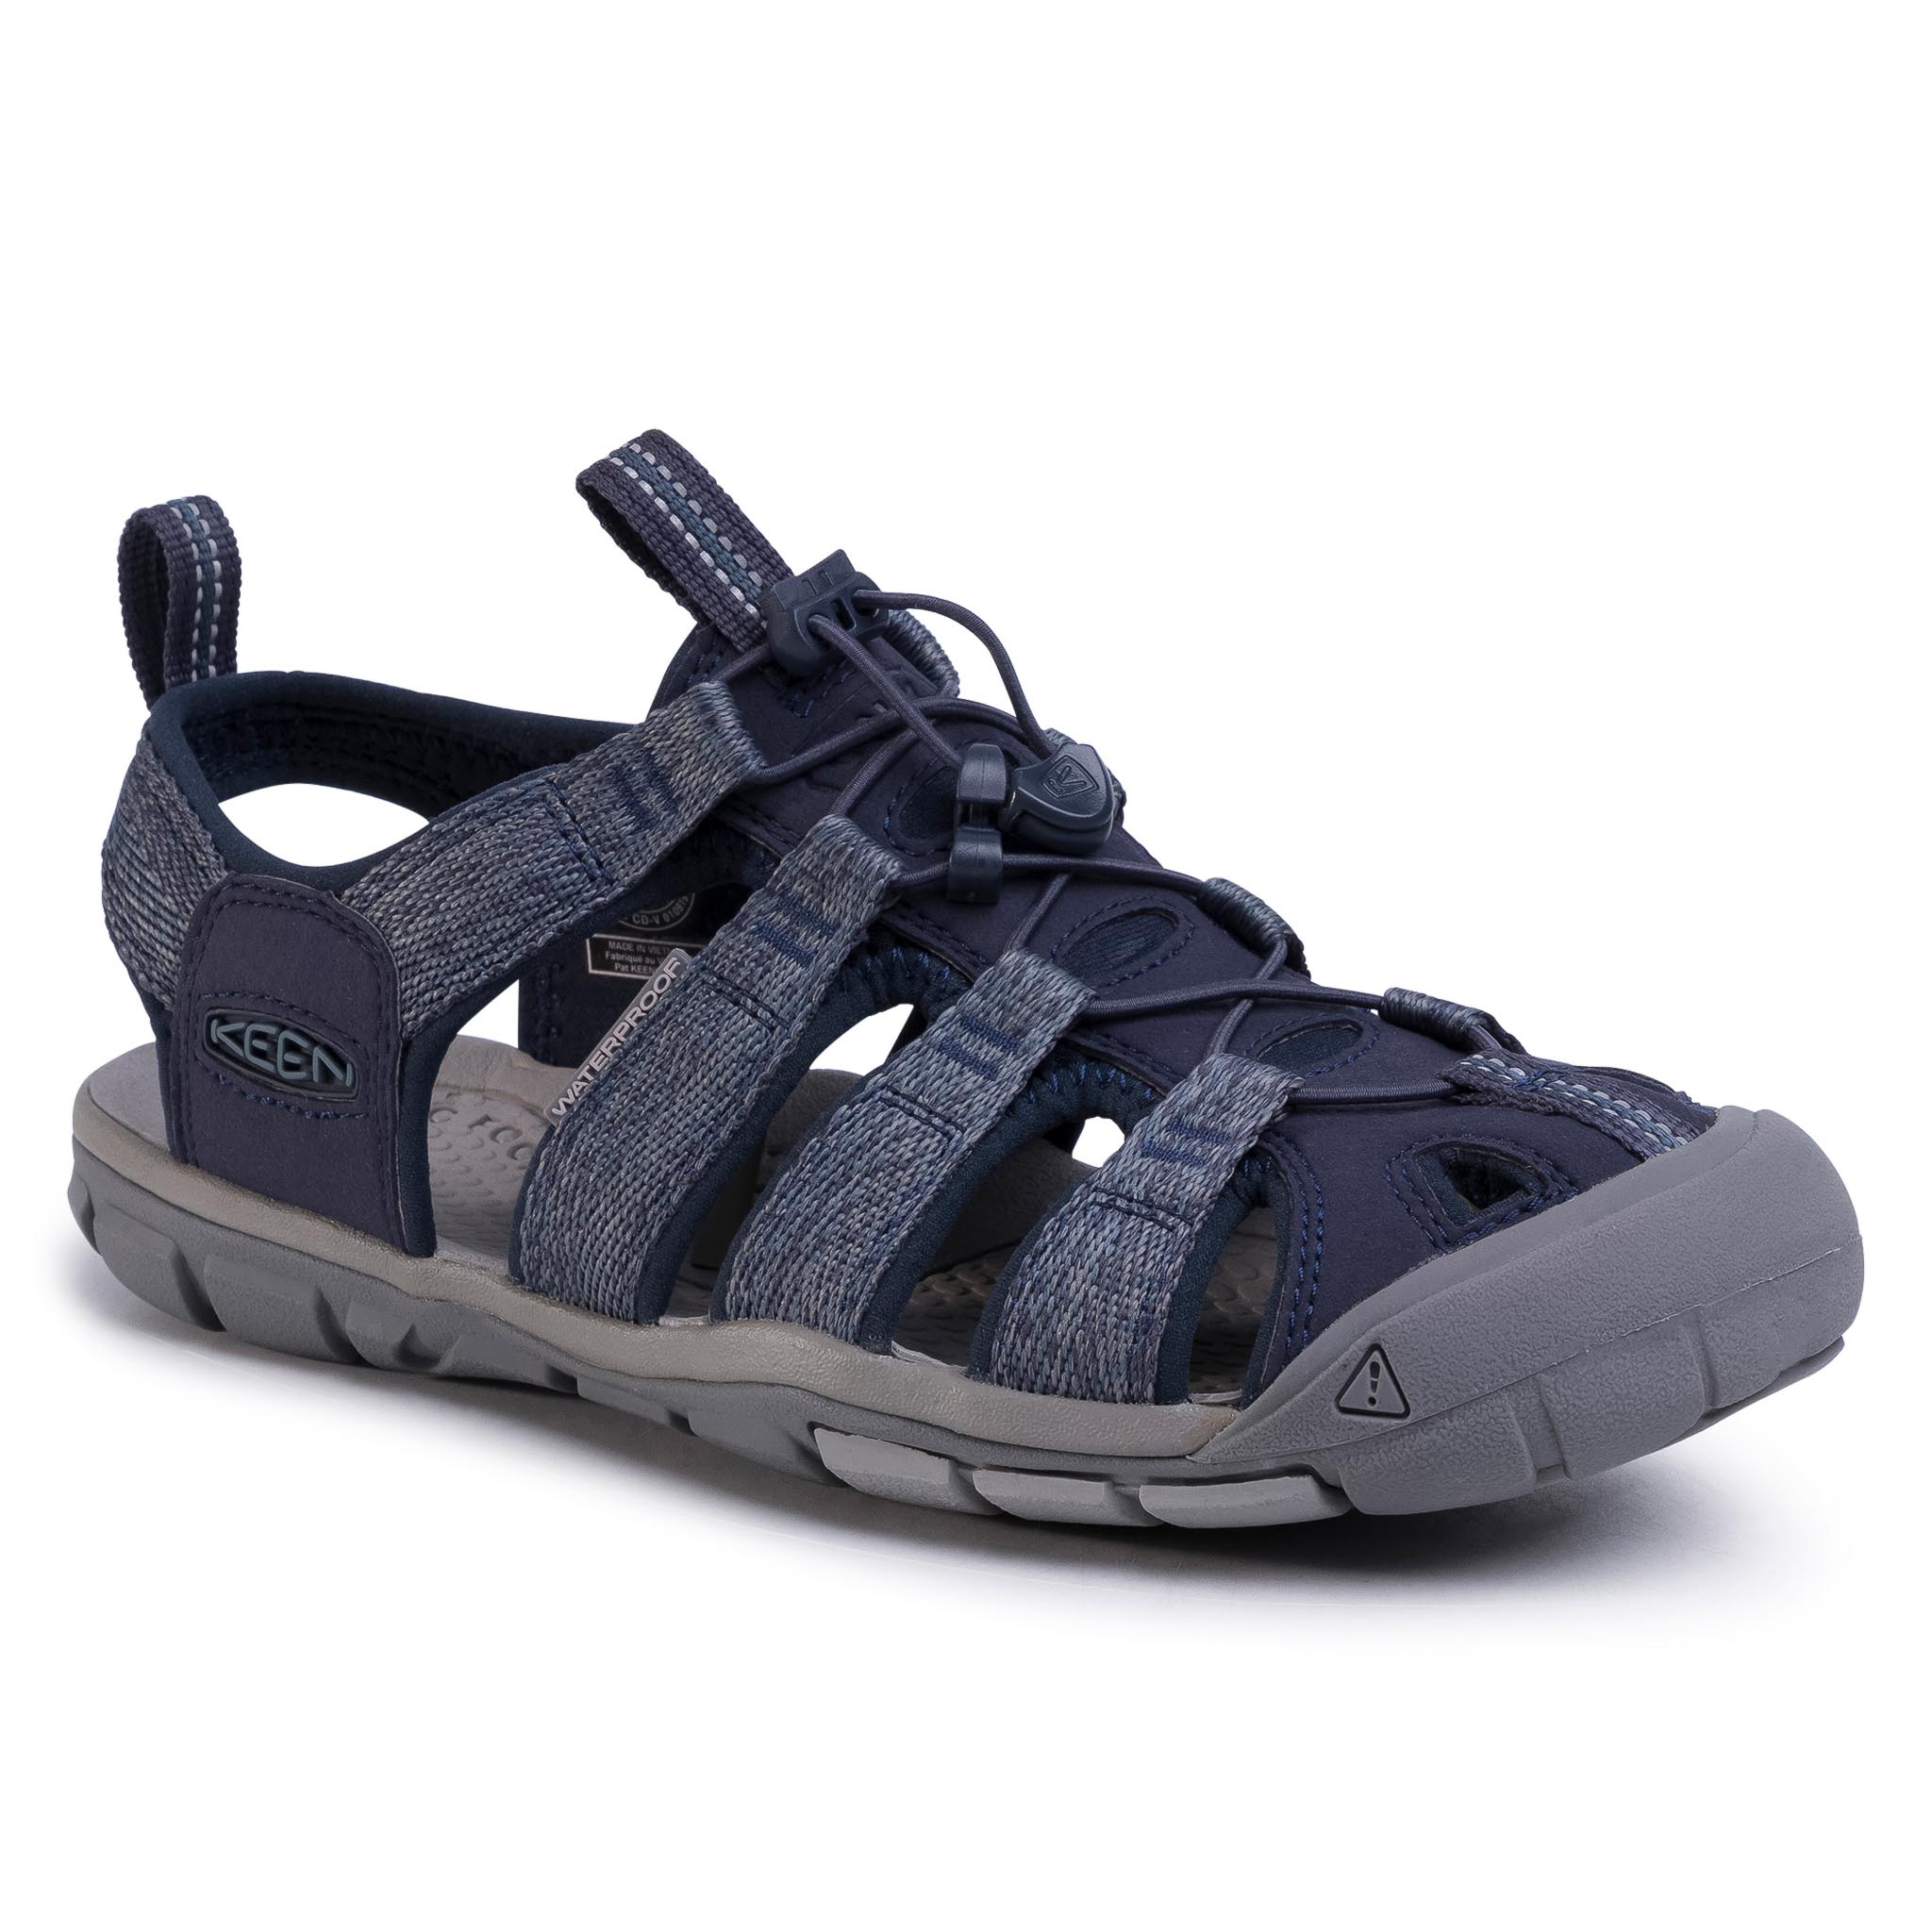 Sandale KEEN - Clearwater Cnx 1022962 Blue/Steel Grey